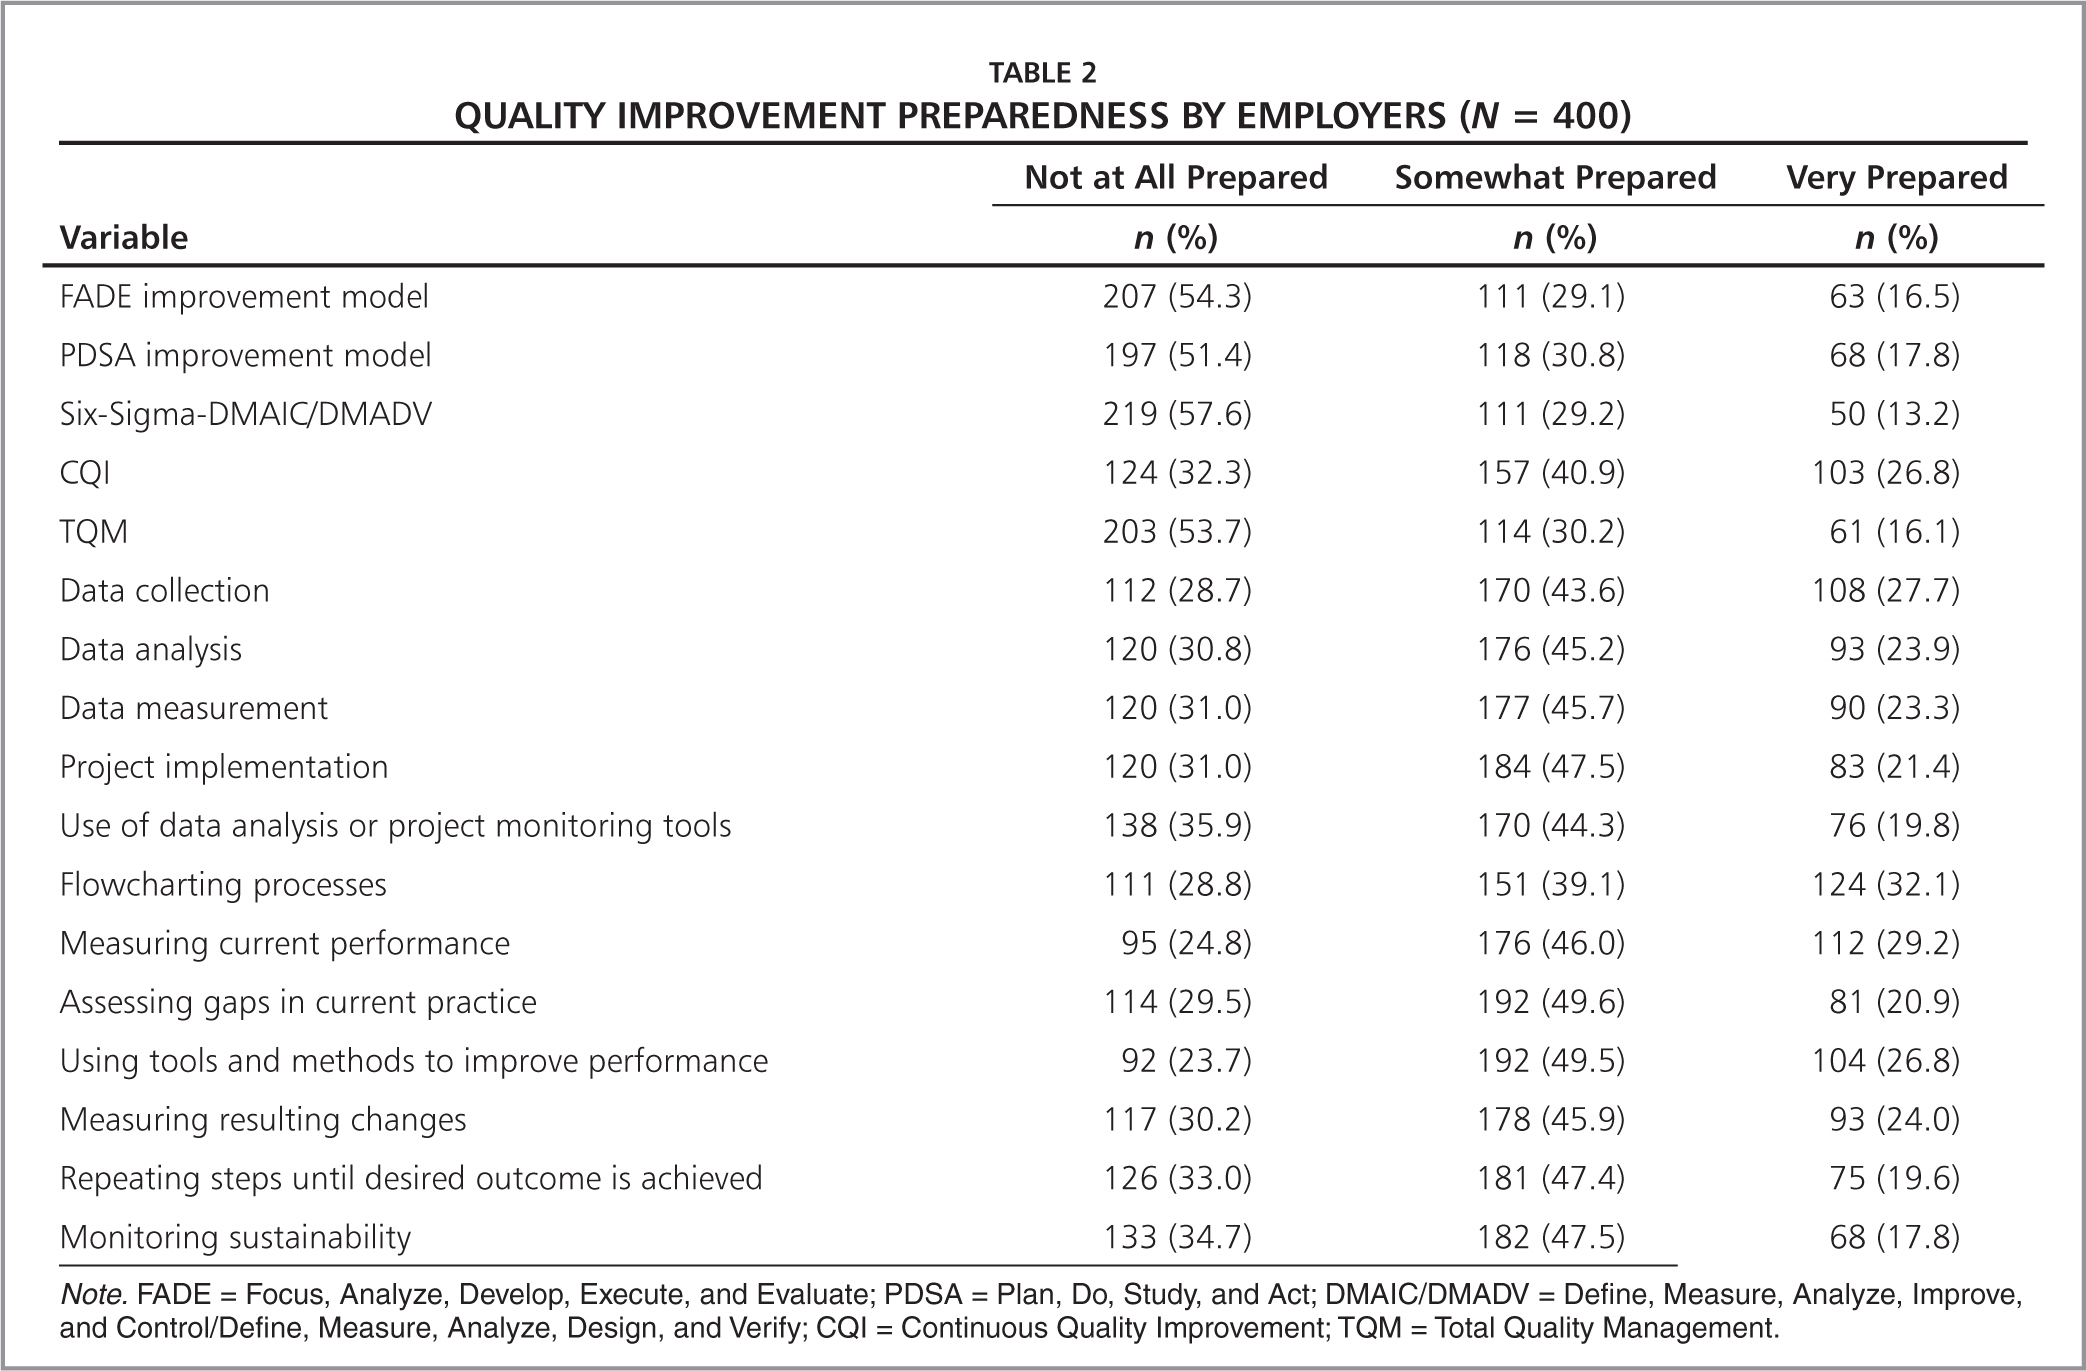 Quality Improvement Preparedness by Employers (N = 400)